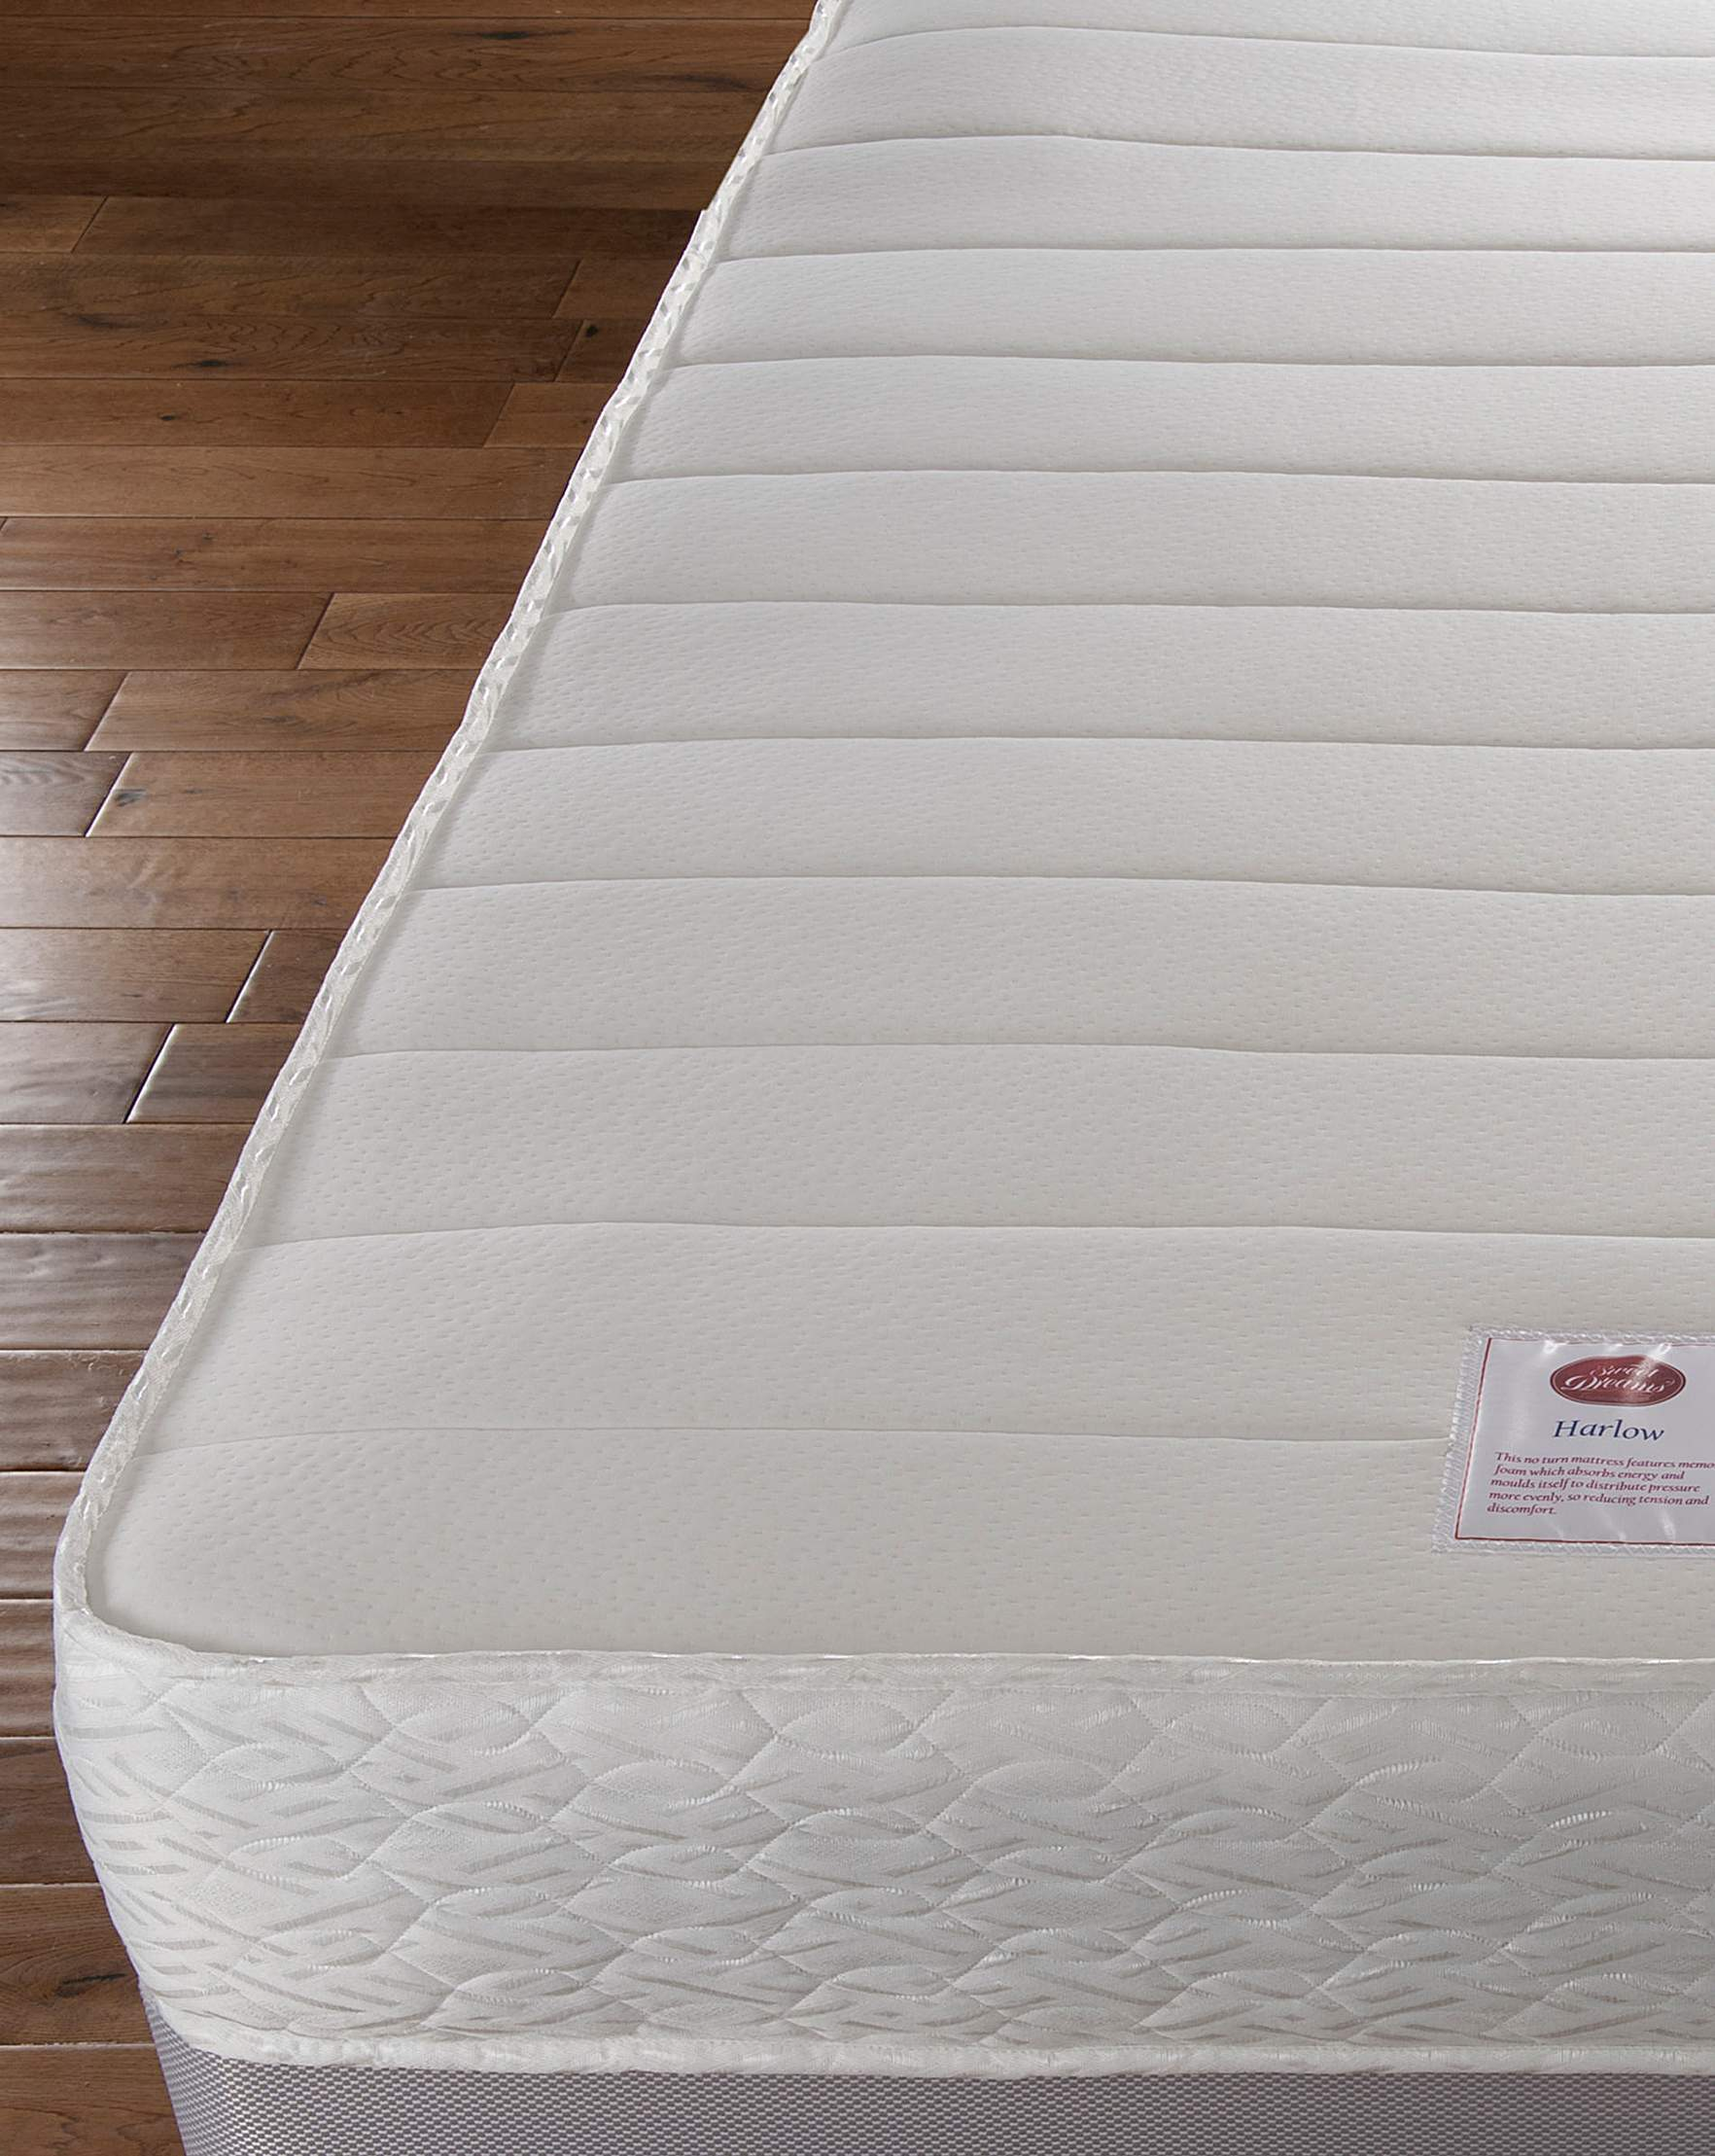 daybed reviews size to own sdown beds comparison vera wang bunk a king center express info mattress jantenhoor uncategorized rent